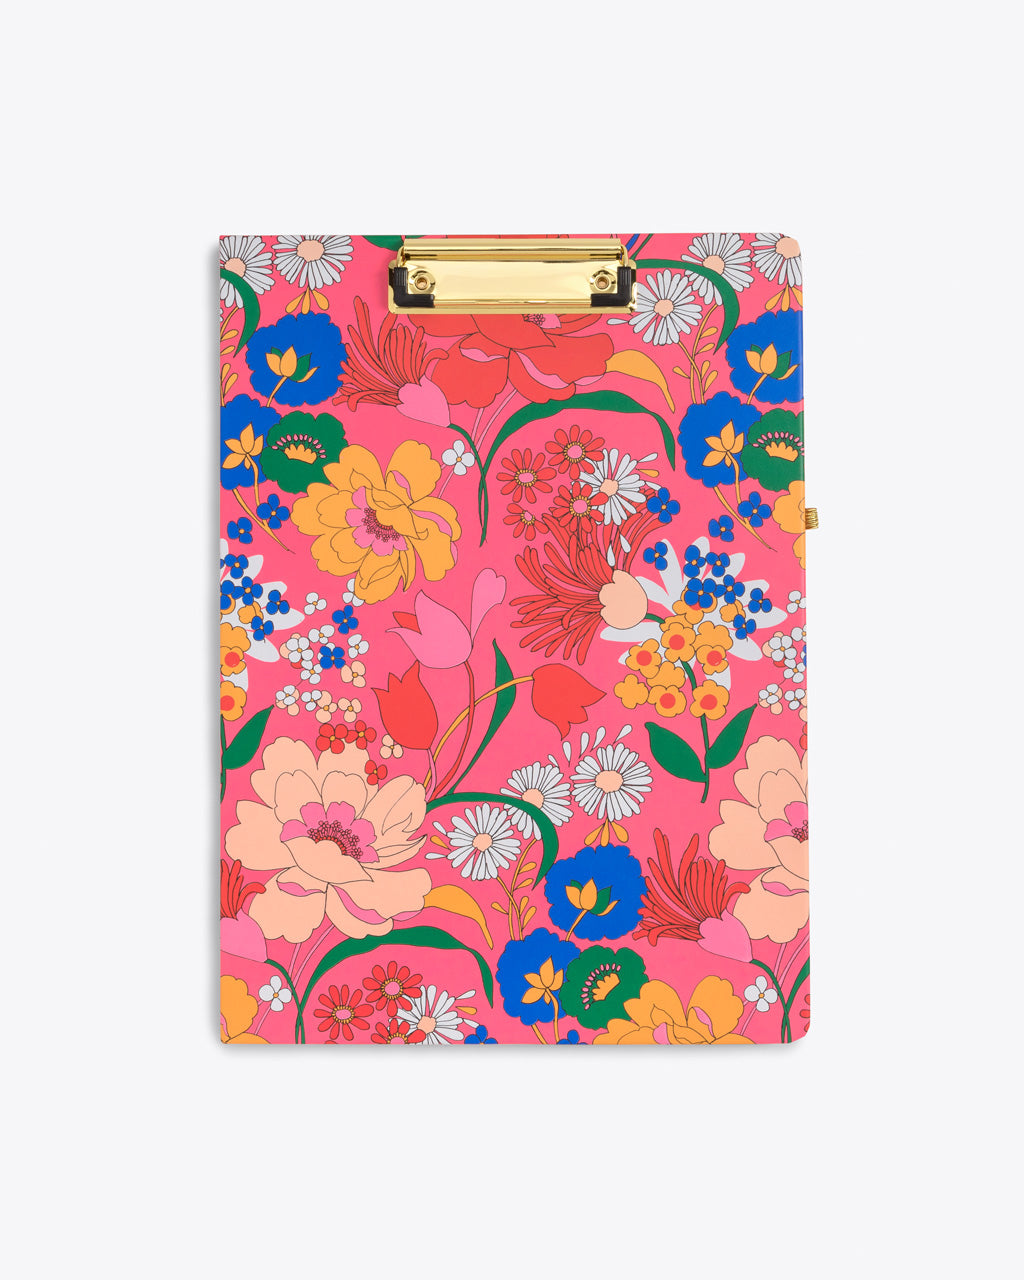 hot pink clipboard folio with a bright floral pattern